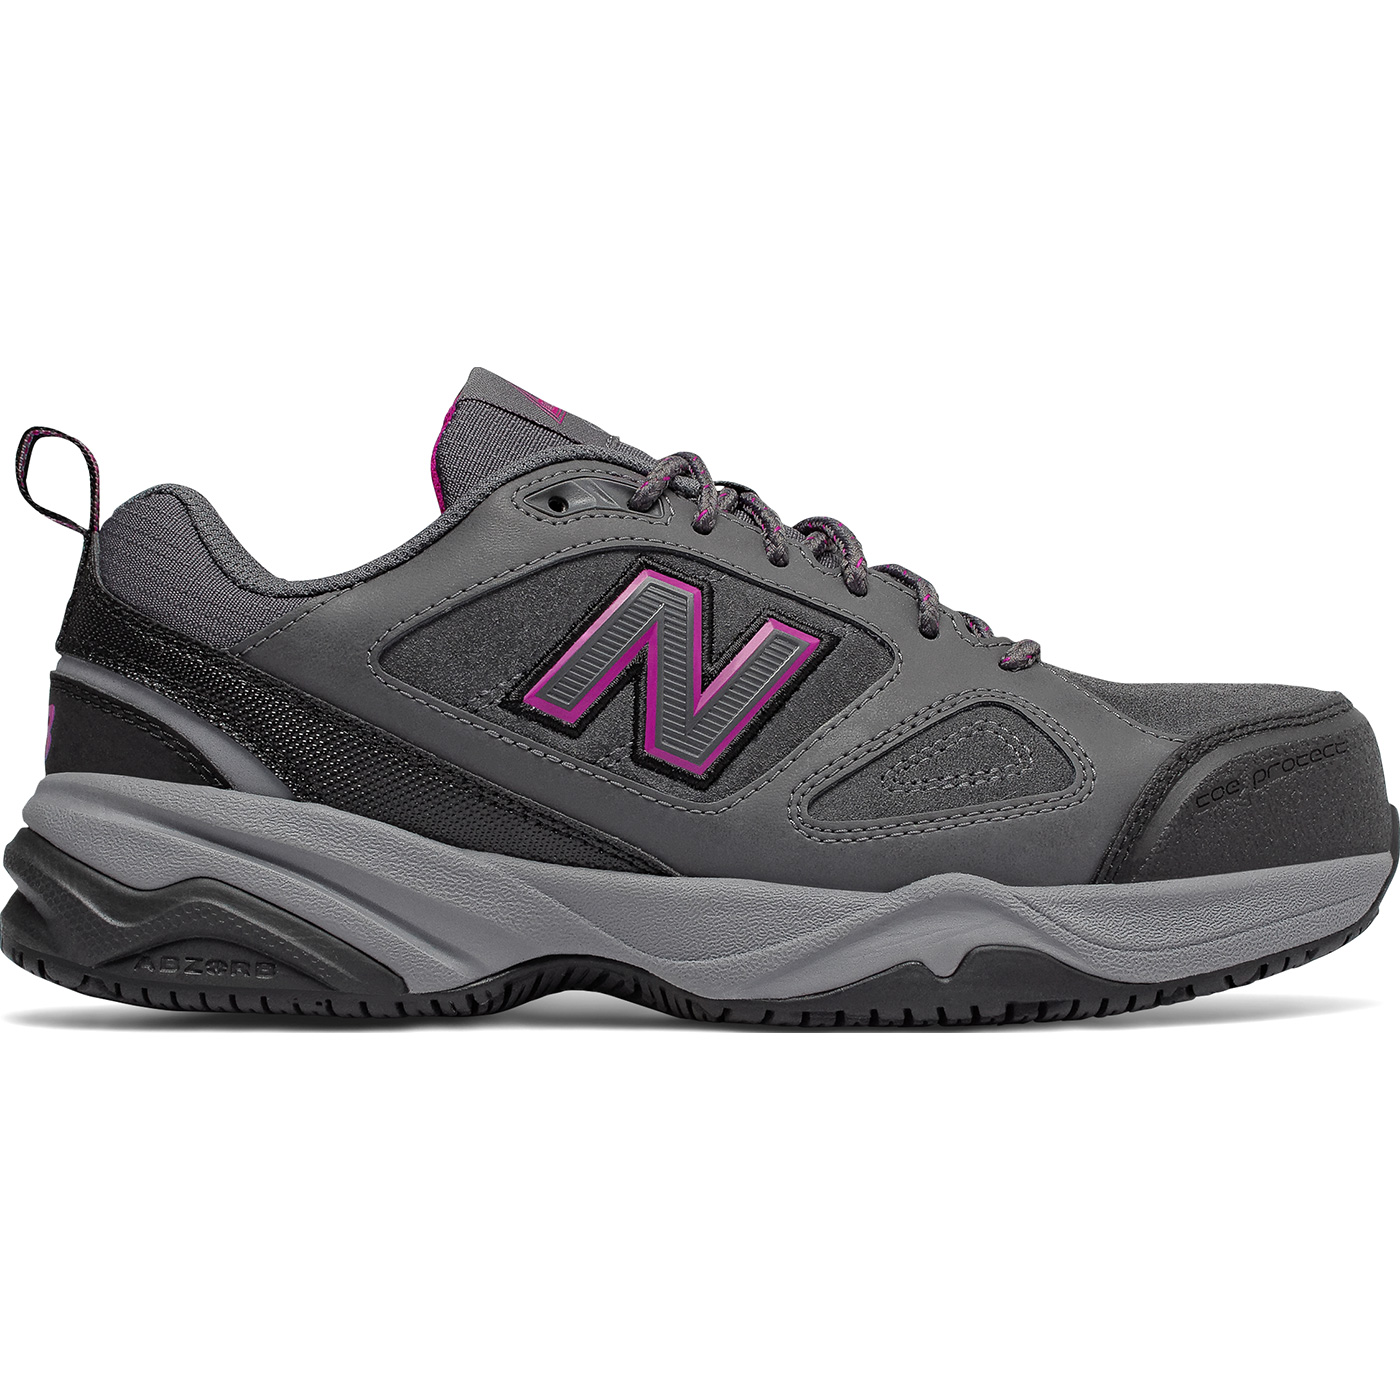 3c5133bc21c26a New Balance 627v2 Women s Steel Toe Slip Resistant Static Dissipative  Leather Athletic Work ShoeNew Balance 627v2 Women s Steel Toe Slip  Resistant Static ...